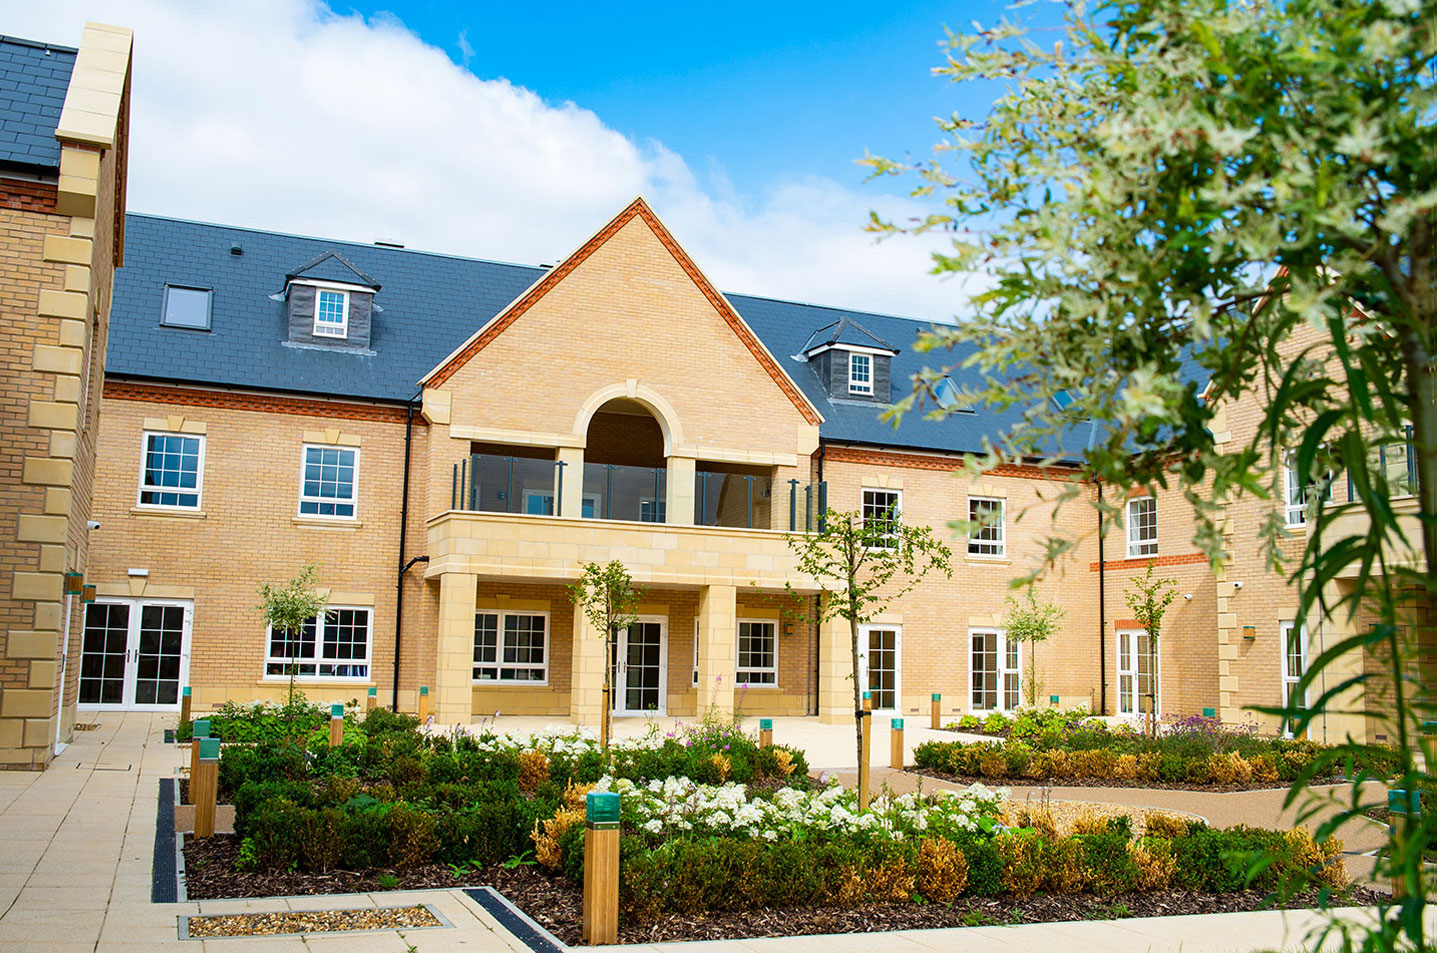 Frontier delivers outstanding healthcare facility for Baycroft at Fairfield, Bedfordshire